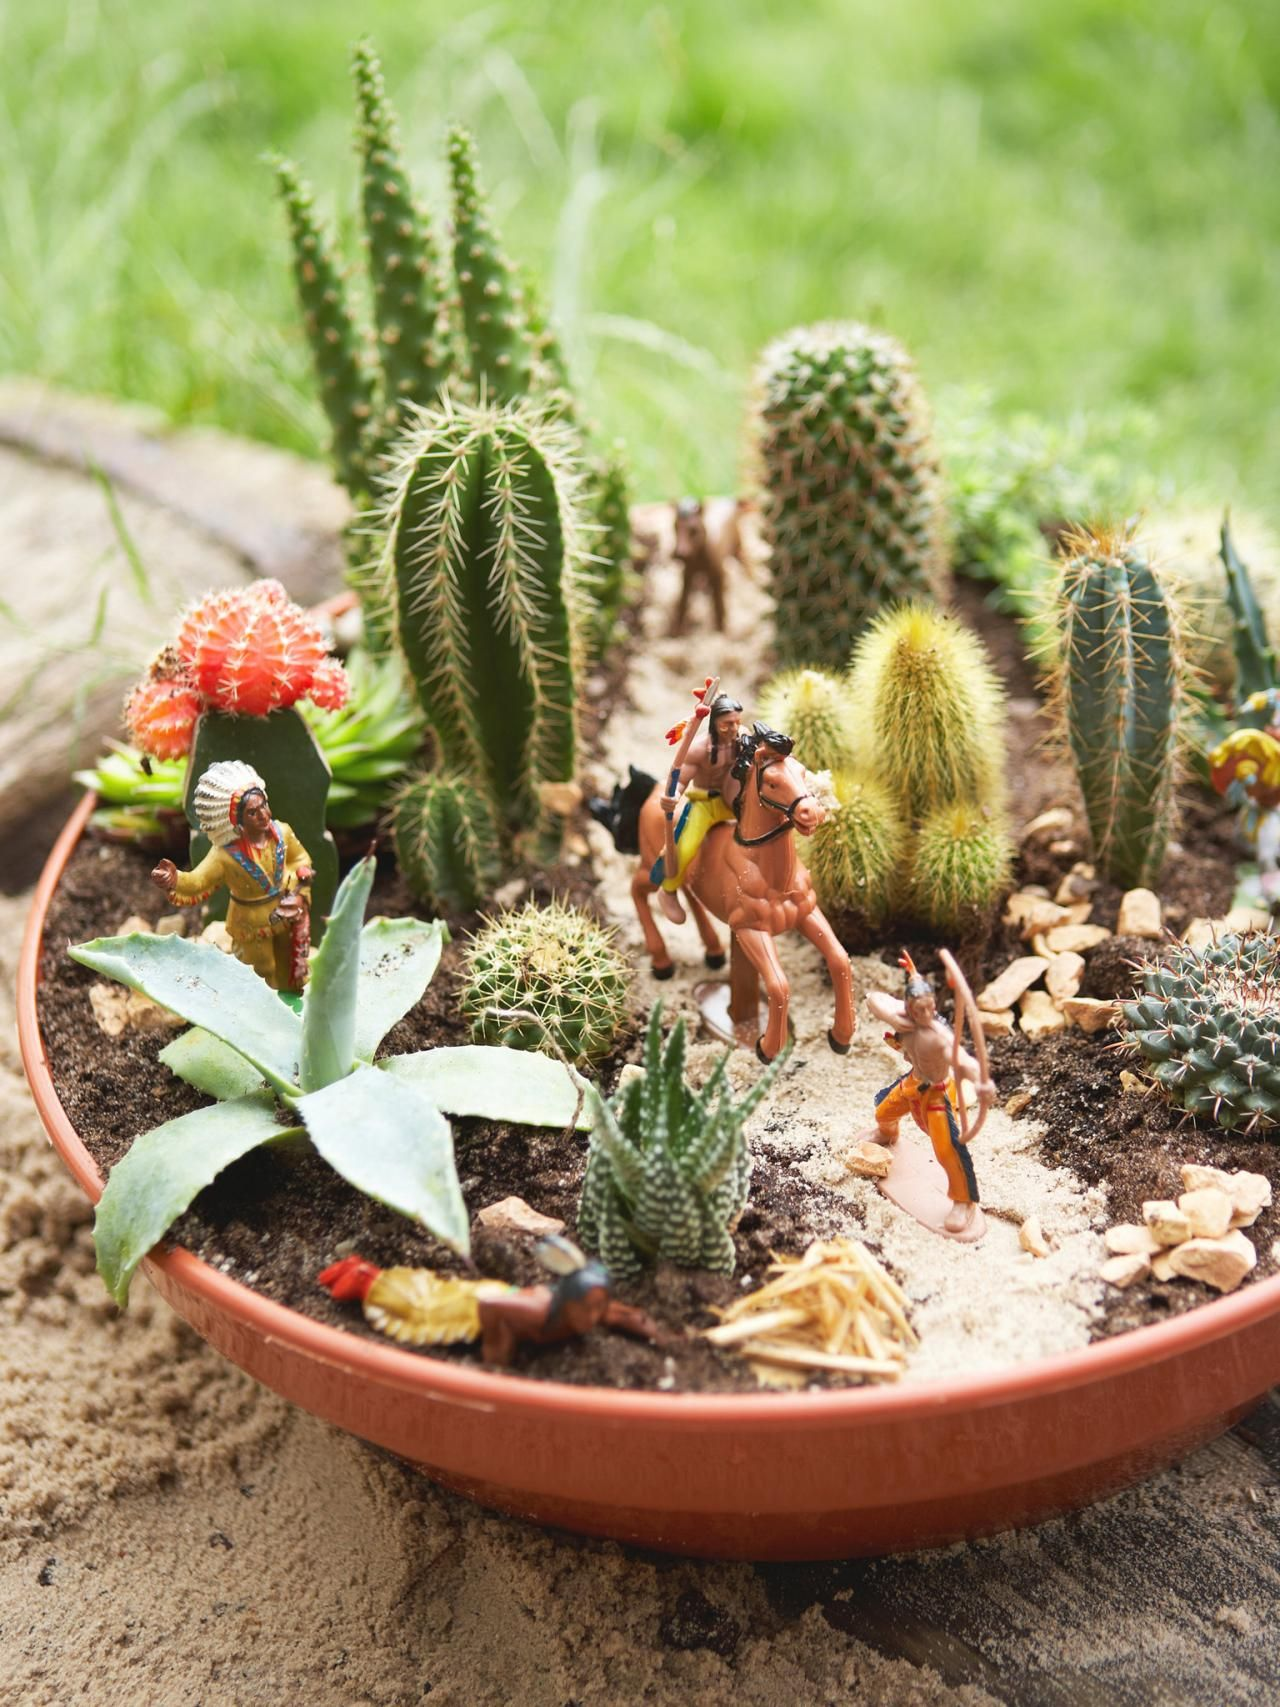 Wonderful Learn How To Turn A Container Into A Desert Landscape By Filling It With  Prickly Cacti And Other Succulent Plants From HGTV Gardens.